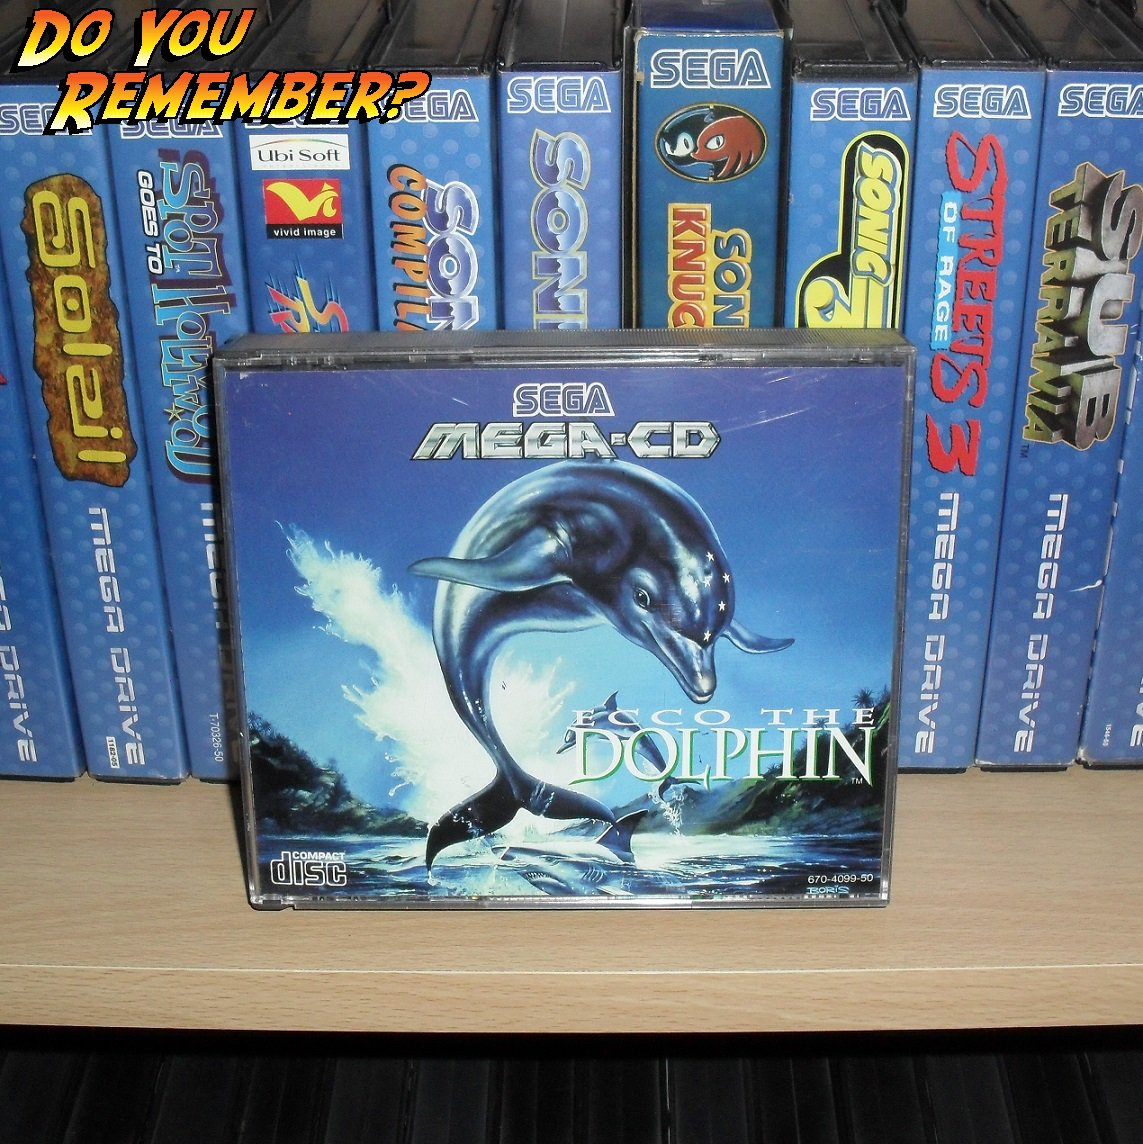 GAME OF THE DAY  NAME: ECCO THE DOLPHIN  DEVELOPER: ED ANNUNZIATA / NOVOTRADE  FORMAT: MCD  RELEASED: 1993  #sega #retrogaming #90s #gaming<br>http://pic.twitter.com/a4LiTpMeyq